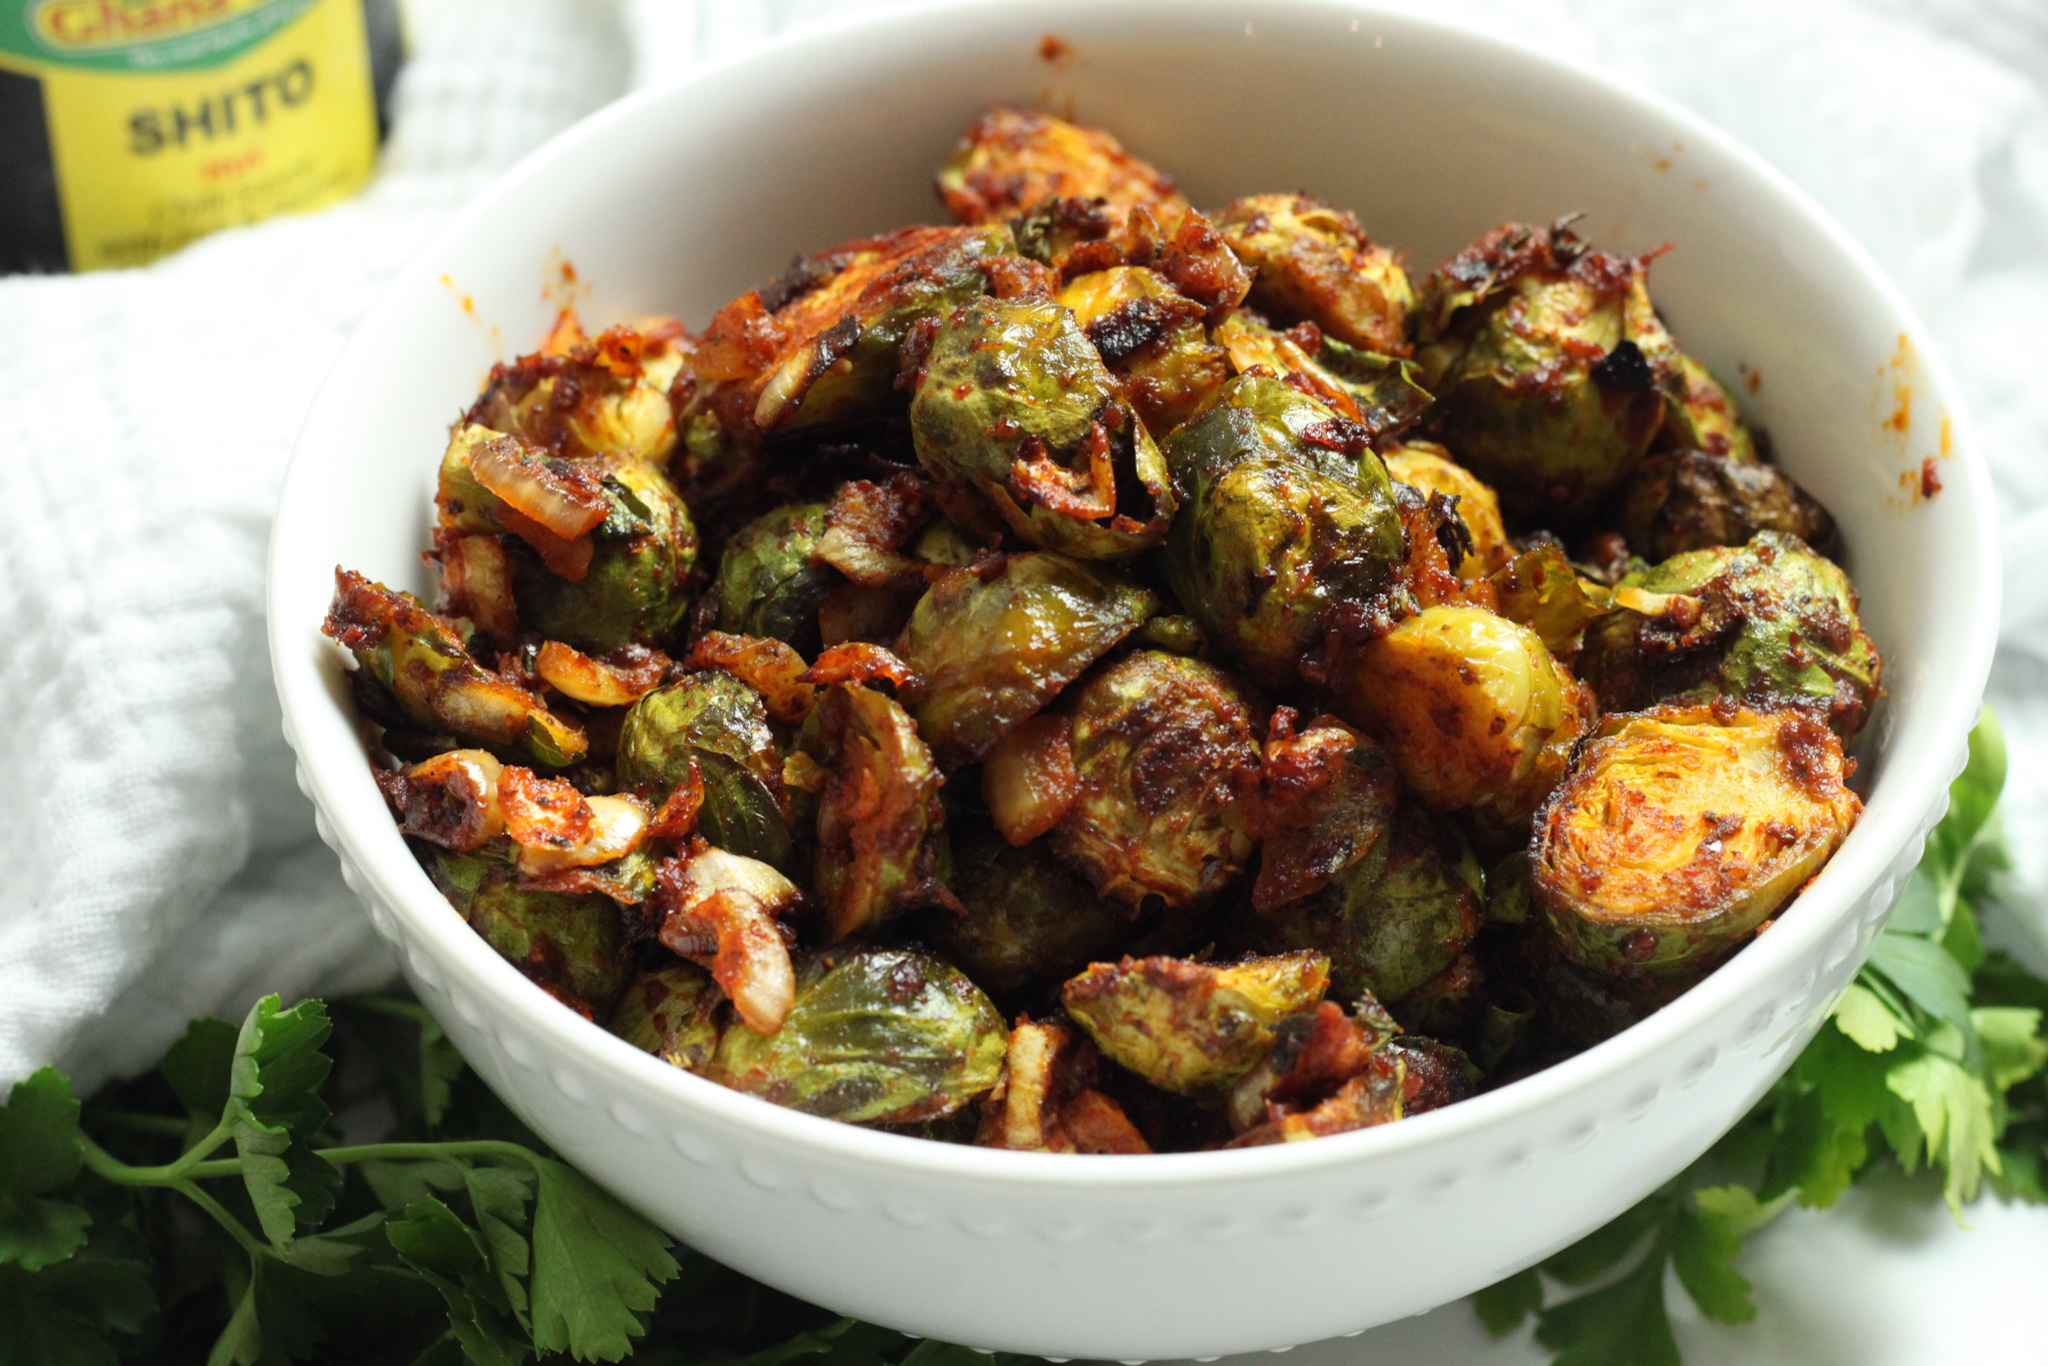 shito roasted Brussels sprouts